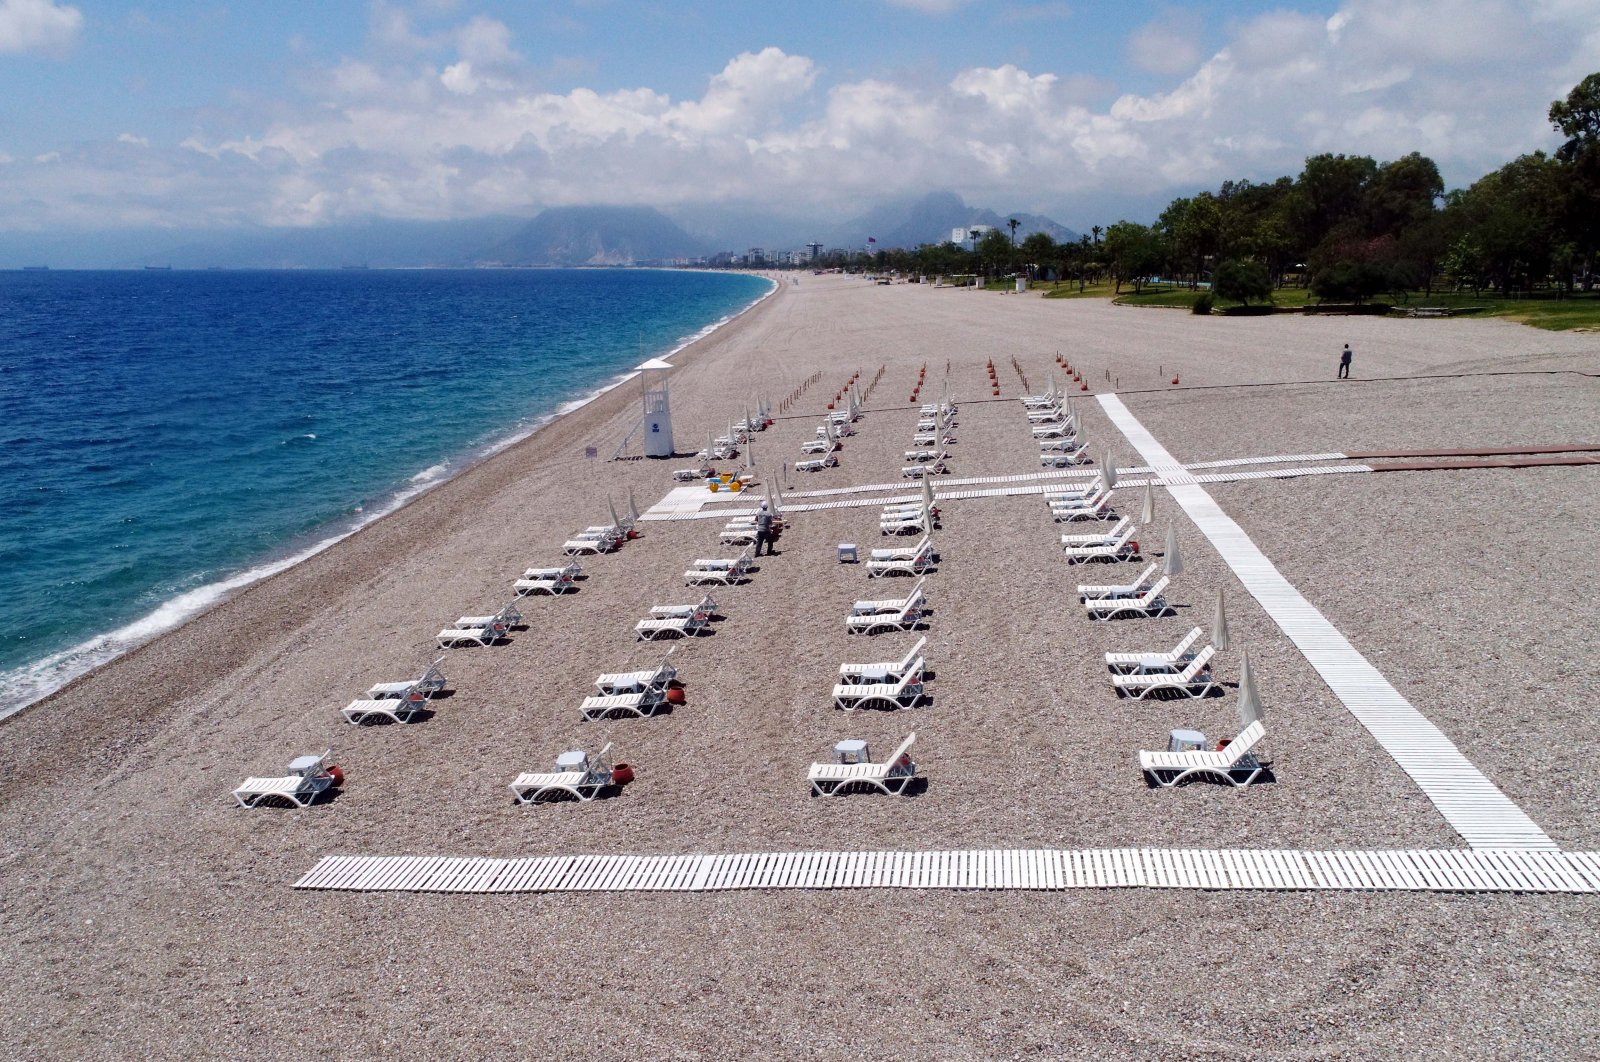 A view of a beach during the coronavirus outbreak in the southern province of Antalya, Turkey, June 1, 2020. (DHA Photo)